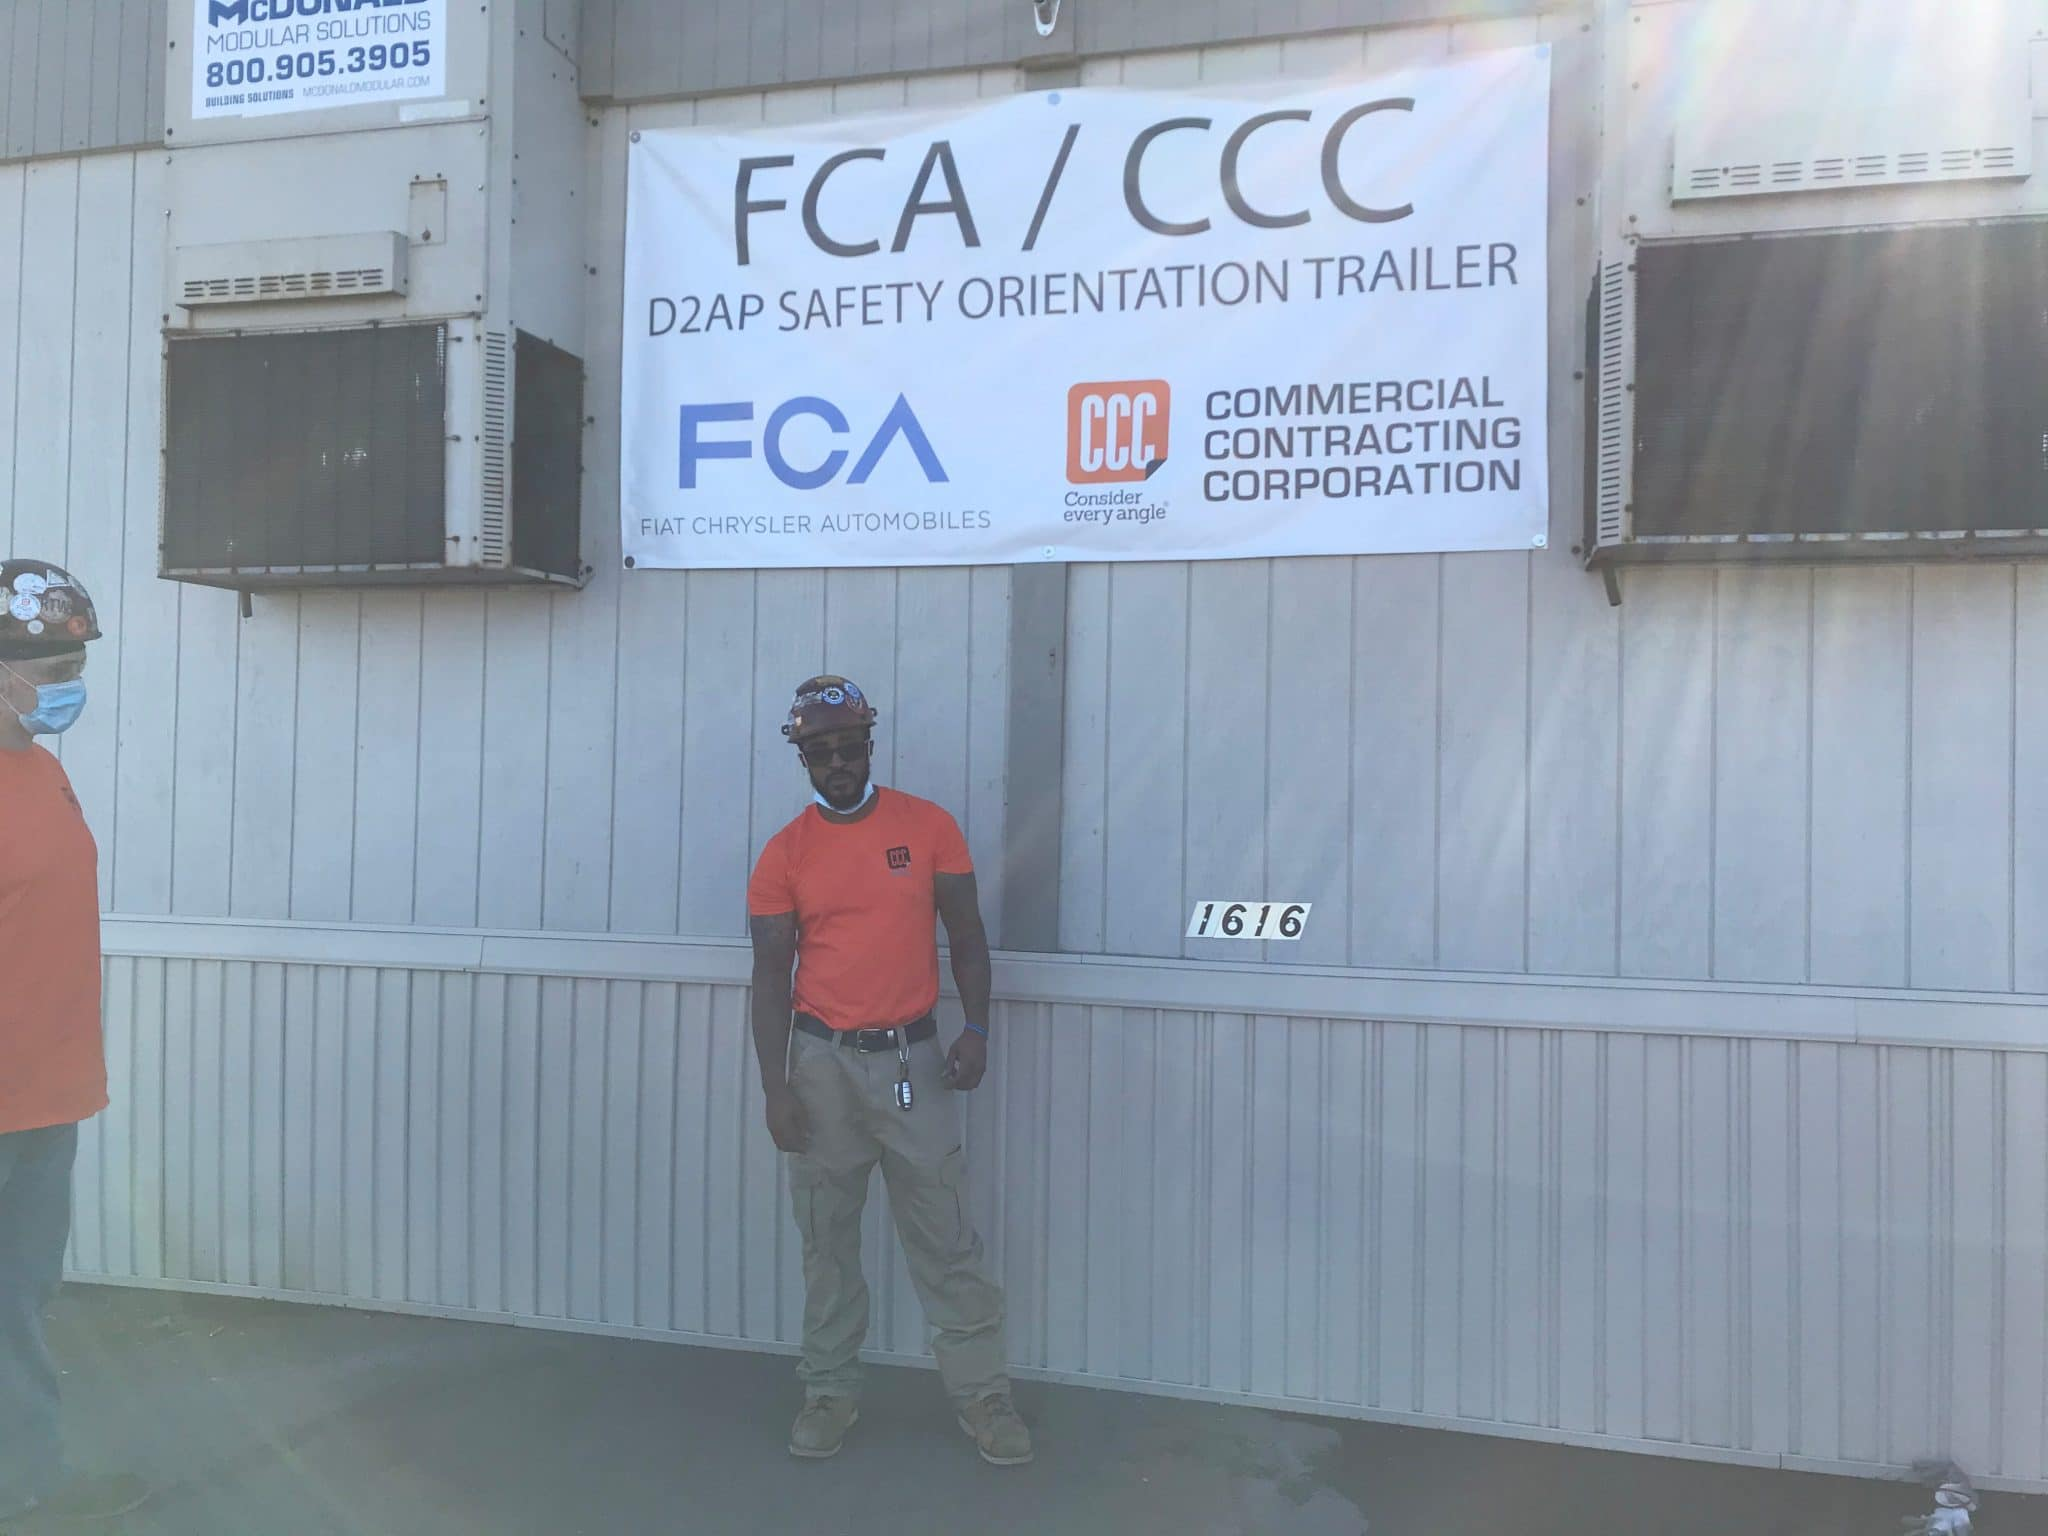 man in orange shirt poses under FCA, CCC sign